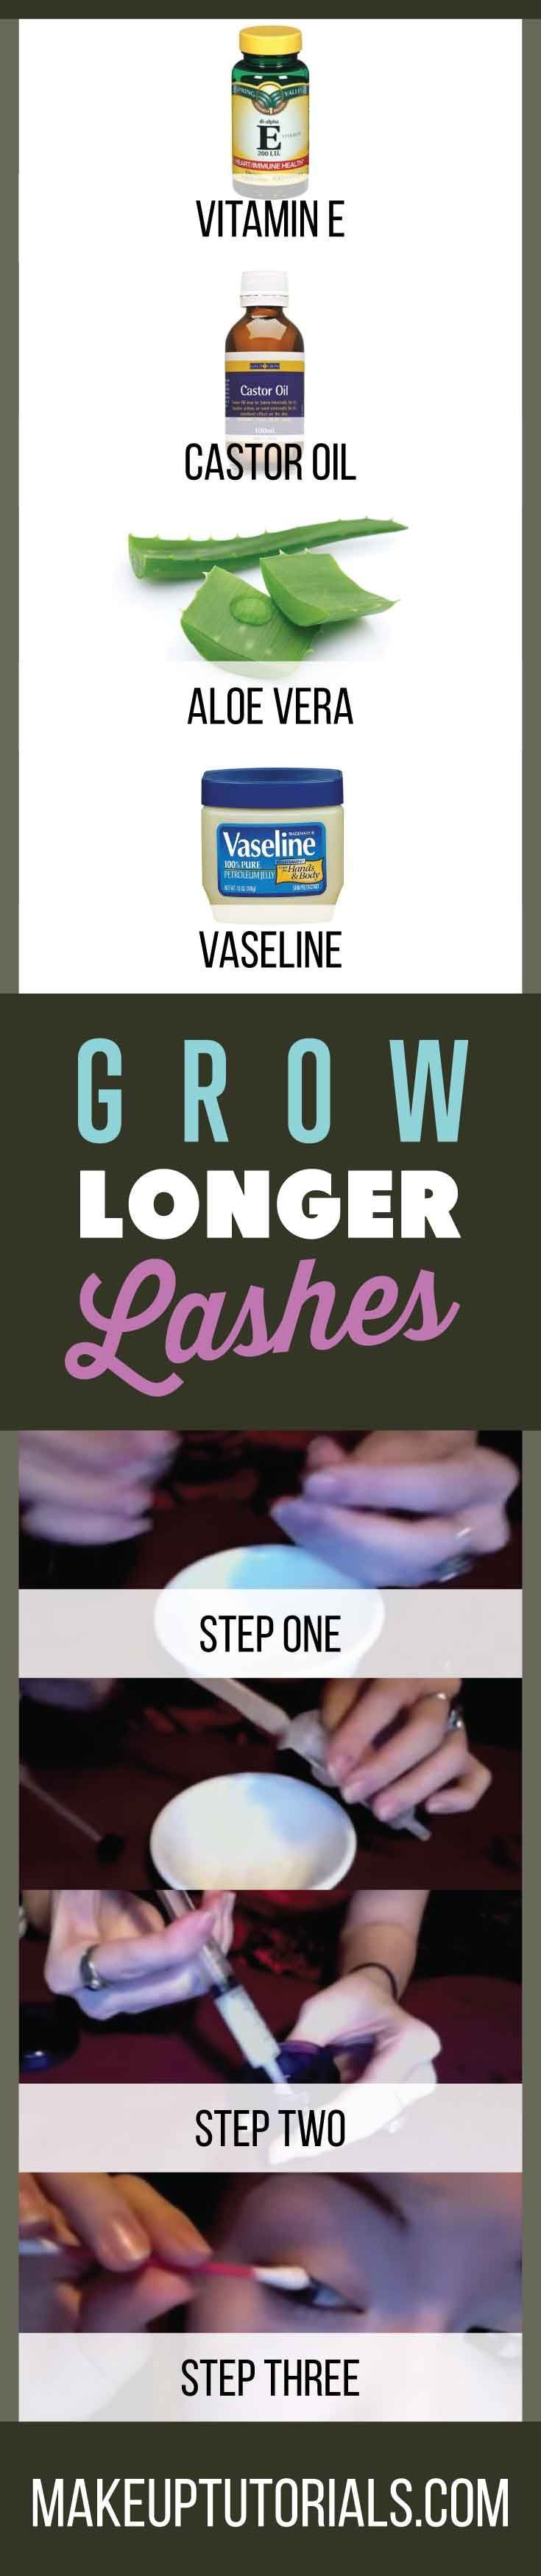 Easy Tips for Longer Eyelashes